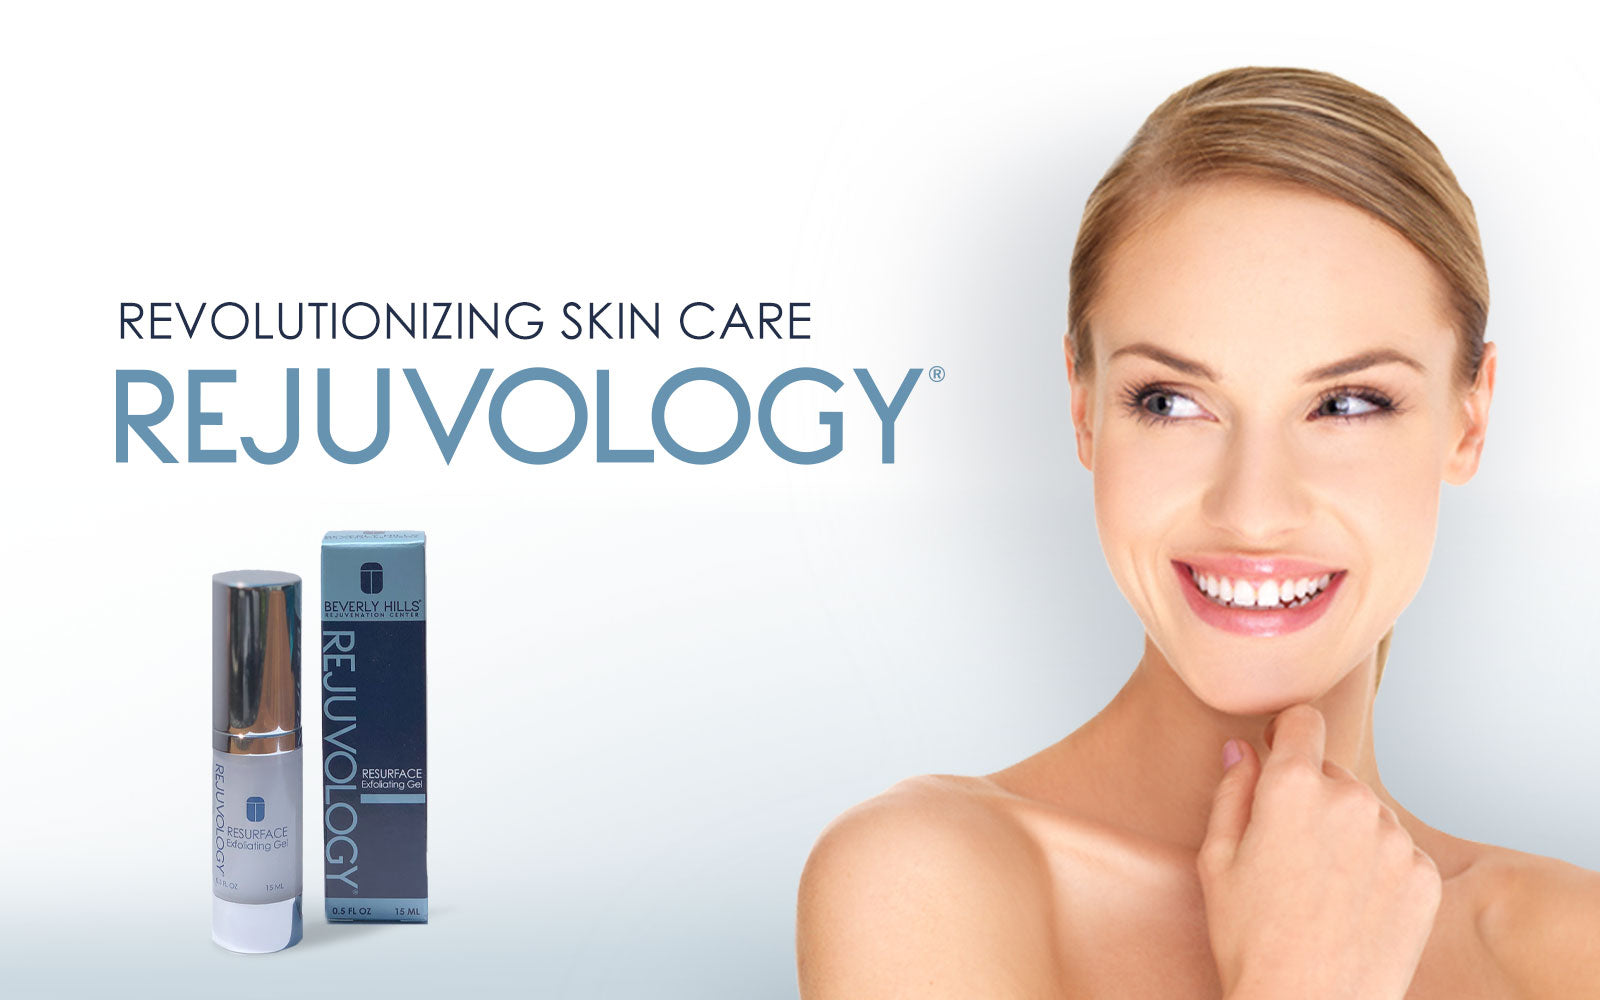 Revolutionizing Skin Care - Rejuvology